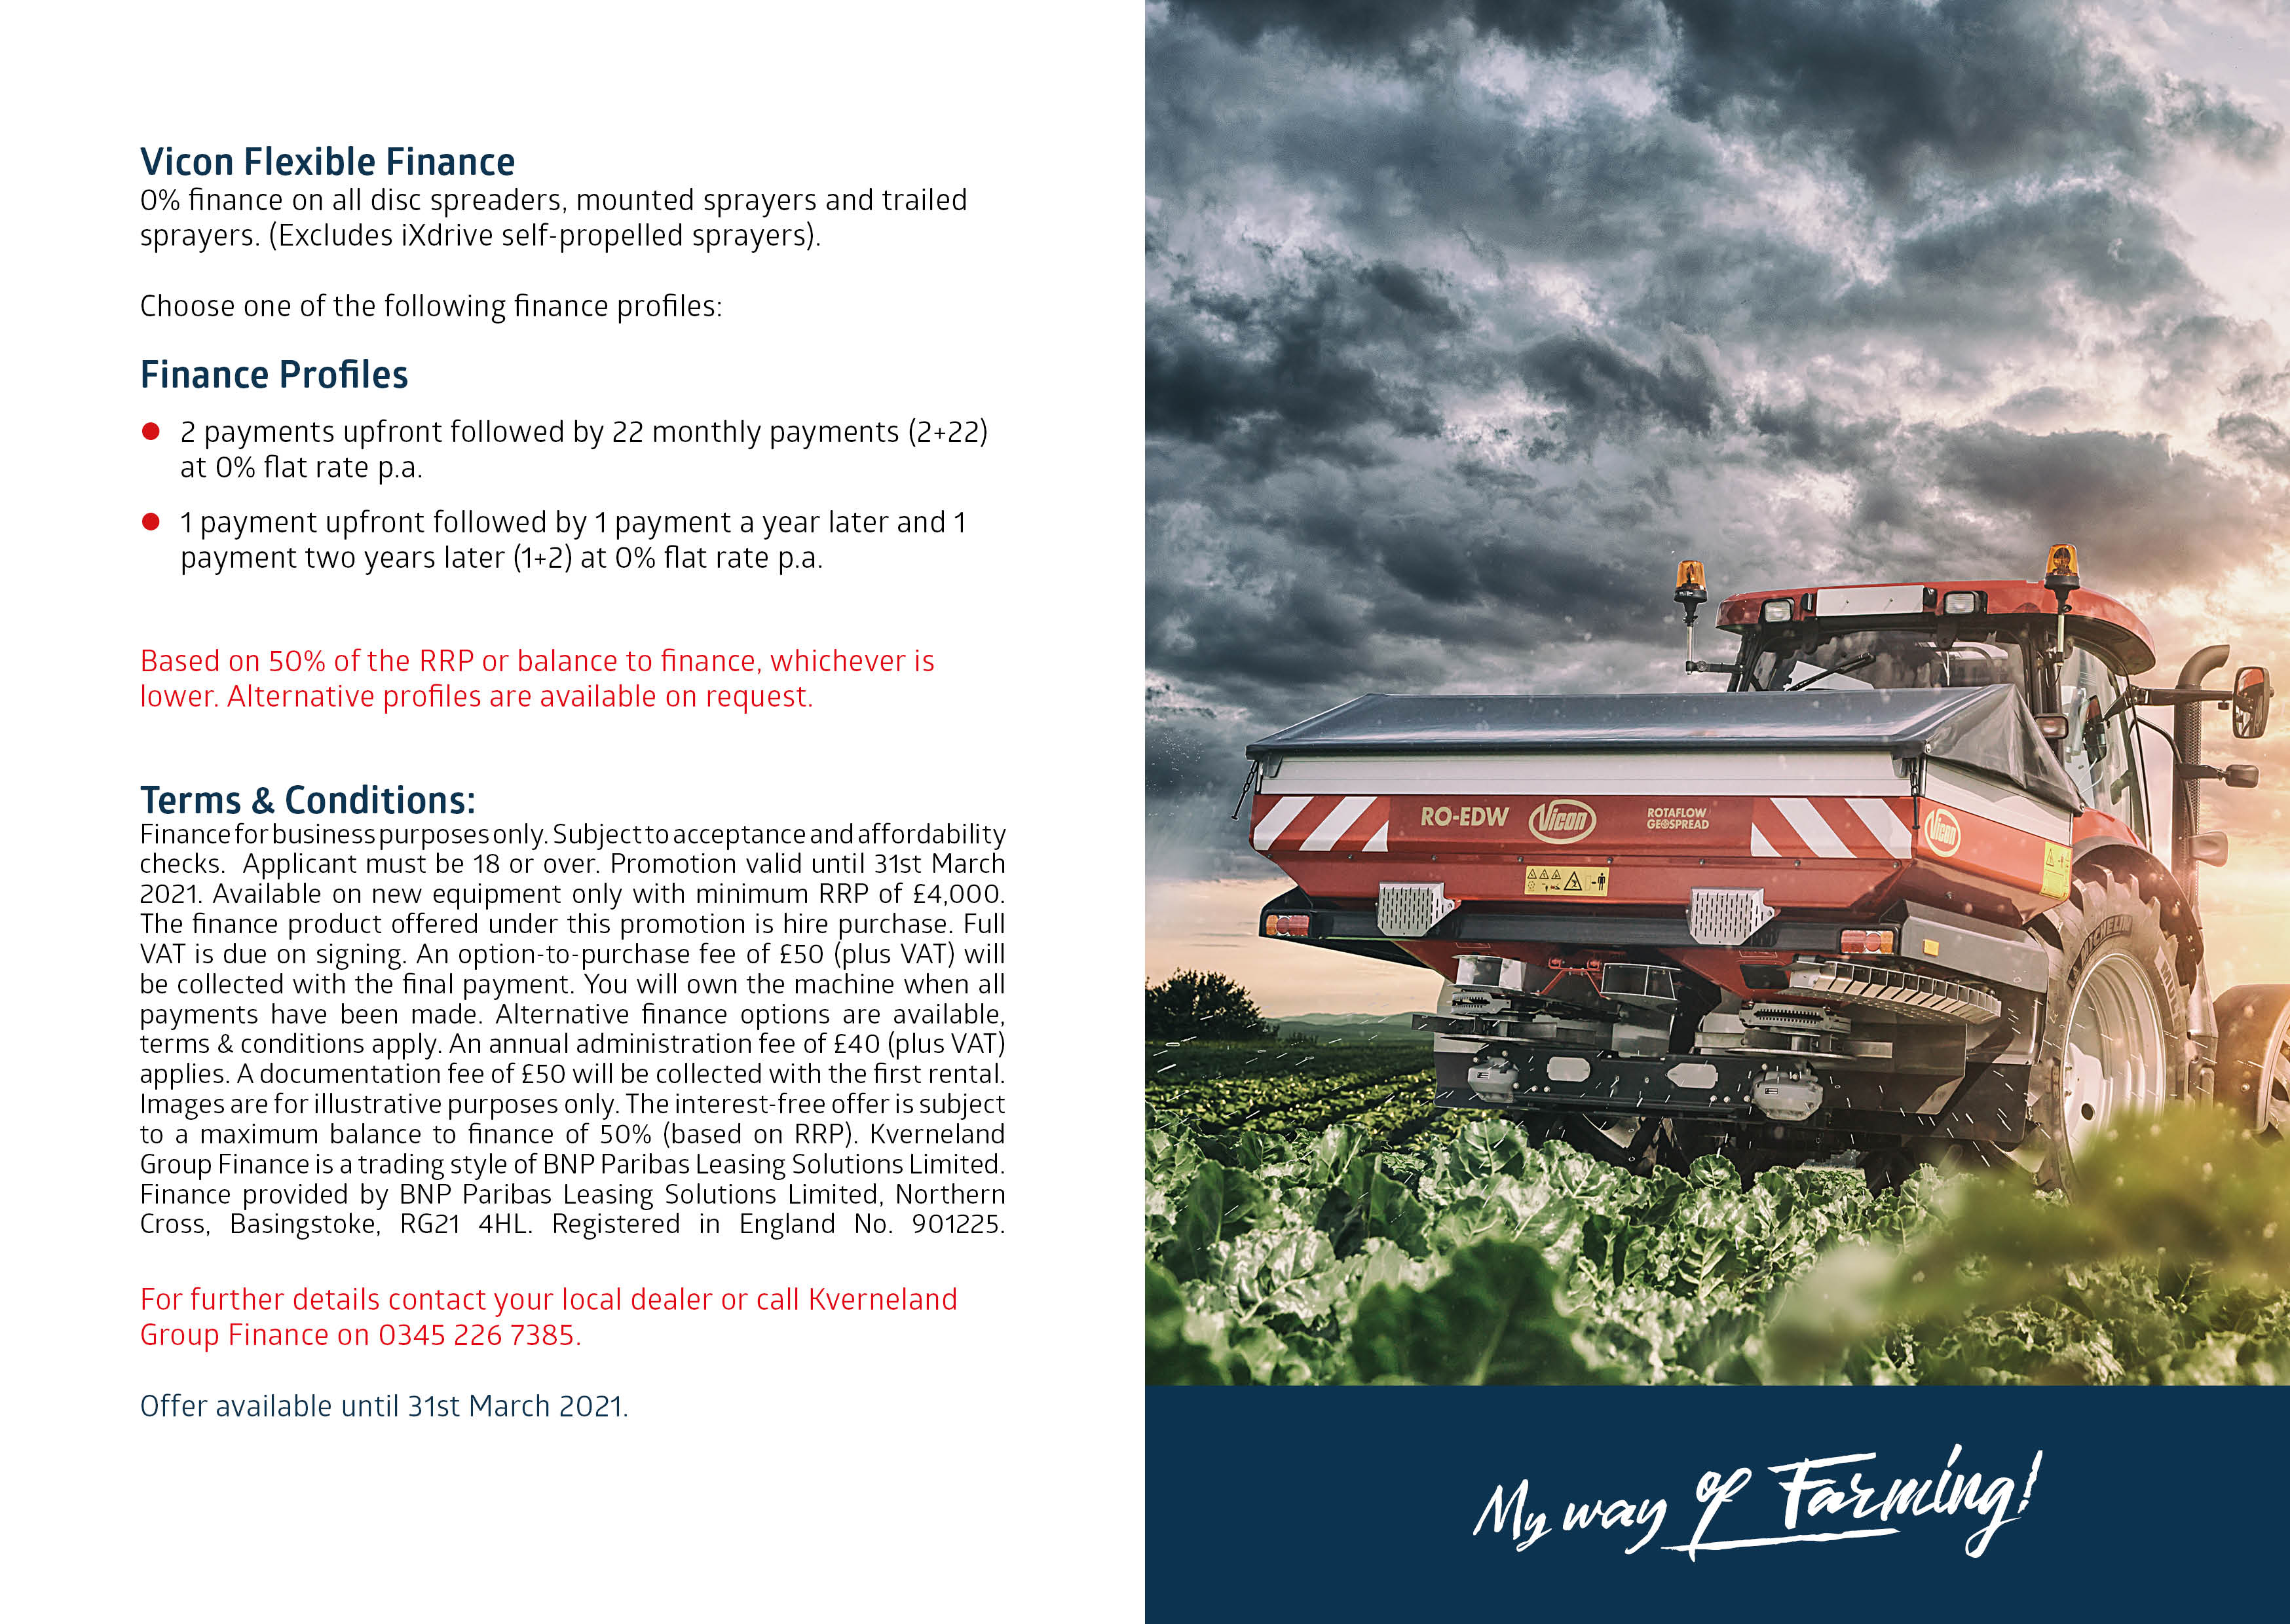 0% Vicon Spreaders and Sprayers Deal image